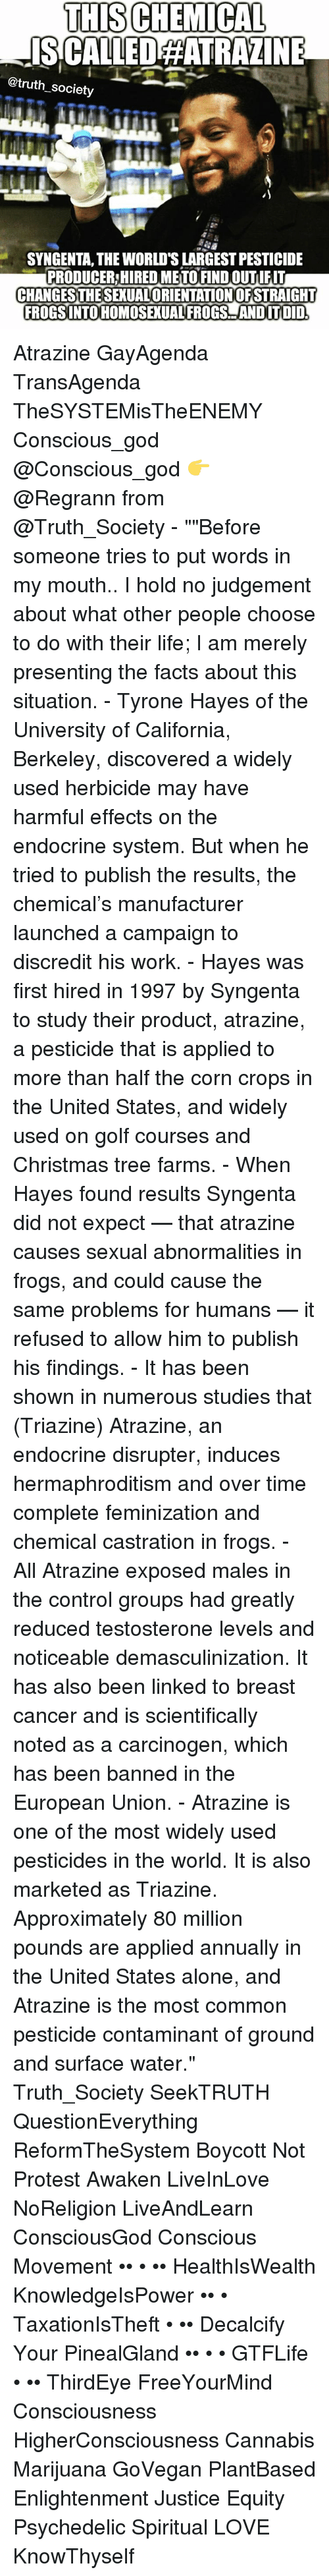 """syngenta: THIS CHEMICAL  ISACALLEDAHATRAZINE  @truth society  SYNGENTA, THE WORLDTSLARGEST PESTICIDE  PRODUCER HIRED METO FINDOUTIFIT  CHANGESTHESEXUALORIENTATIONOFSTRAIGHT  FROGSINTOHOMOSEXUALFROGS AND ITDID. Atrazine GayAgenda TransAgenda TheSYSTEMisTheENEMY Conscious_god @Conscious_god 👉 @Regrann from @Truth_Society - """"""""Before someone tries to put words in my mouth.. I hold no judgement about what other people choose to do with their life; I am merely presenting the facts about this situation. - Tyrone Hayes of the University of California, Berkeley, discovered a widely used herbicide may have harmful effects on the endocrine system. But when he tried to publish the results, the chemical's manufacturer launched a campaign to discredit his work. - Hayes was first hired in 1997 by Syngenta to study their product, atrazine, a pesticide that is applied to more than half the corn crops in the United States, and widely used on golf courses and Christmas tree farms. - When Hayes found results Syngenta did not expect — that atrazine causes sexual abnormalities in frogs, and could cause the same problems for humans — it refused to allow him to publish his findings. - It has been shown in numerous studies that (Triazine) Atrazine, an endocrine disrupter, induces hermaphroditism and over time complete feminization and chemical castration in frogs. - All Atrazine exposed males in the control groups had greatly reduced testosterone levels and noticeable demasculinization. It has also been linked to breast cancer and is scientifically noted as a carcinogen, which has been banned in the European Union. - Atrazine is one of the most widely used pesticides in the world. It is also marketed as Triazine. Approximately 80 million pounds are applied annually in the United States alone, and Atrazine is the most common pesticide contaminant of ground and surface water."""" Truth_Society SeekTRUTH QuestionEverything ReformTheSystem Boycott Not Protest Awaken LiveInLove NoReligion LiveAndLe"""